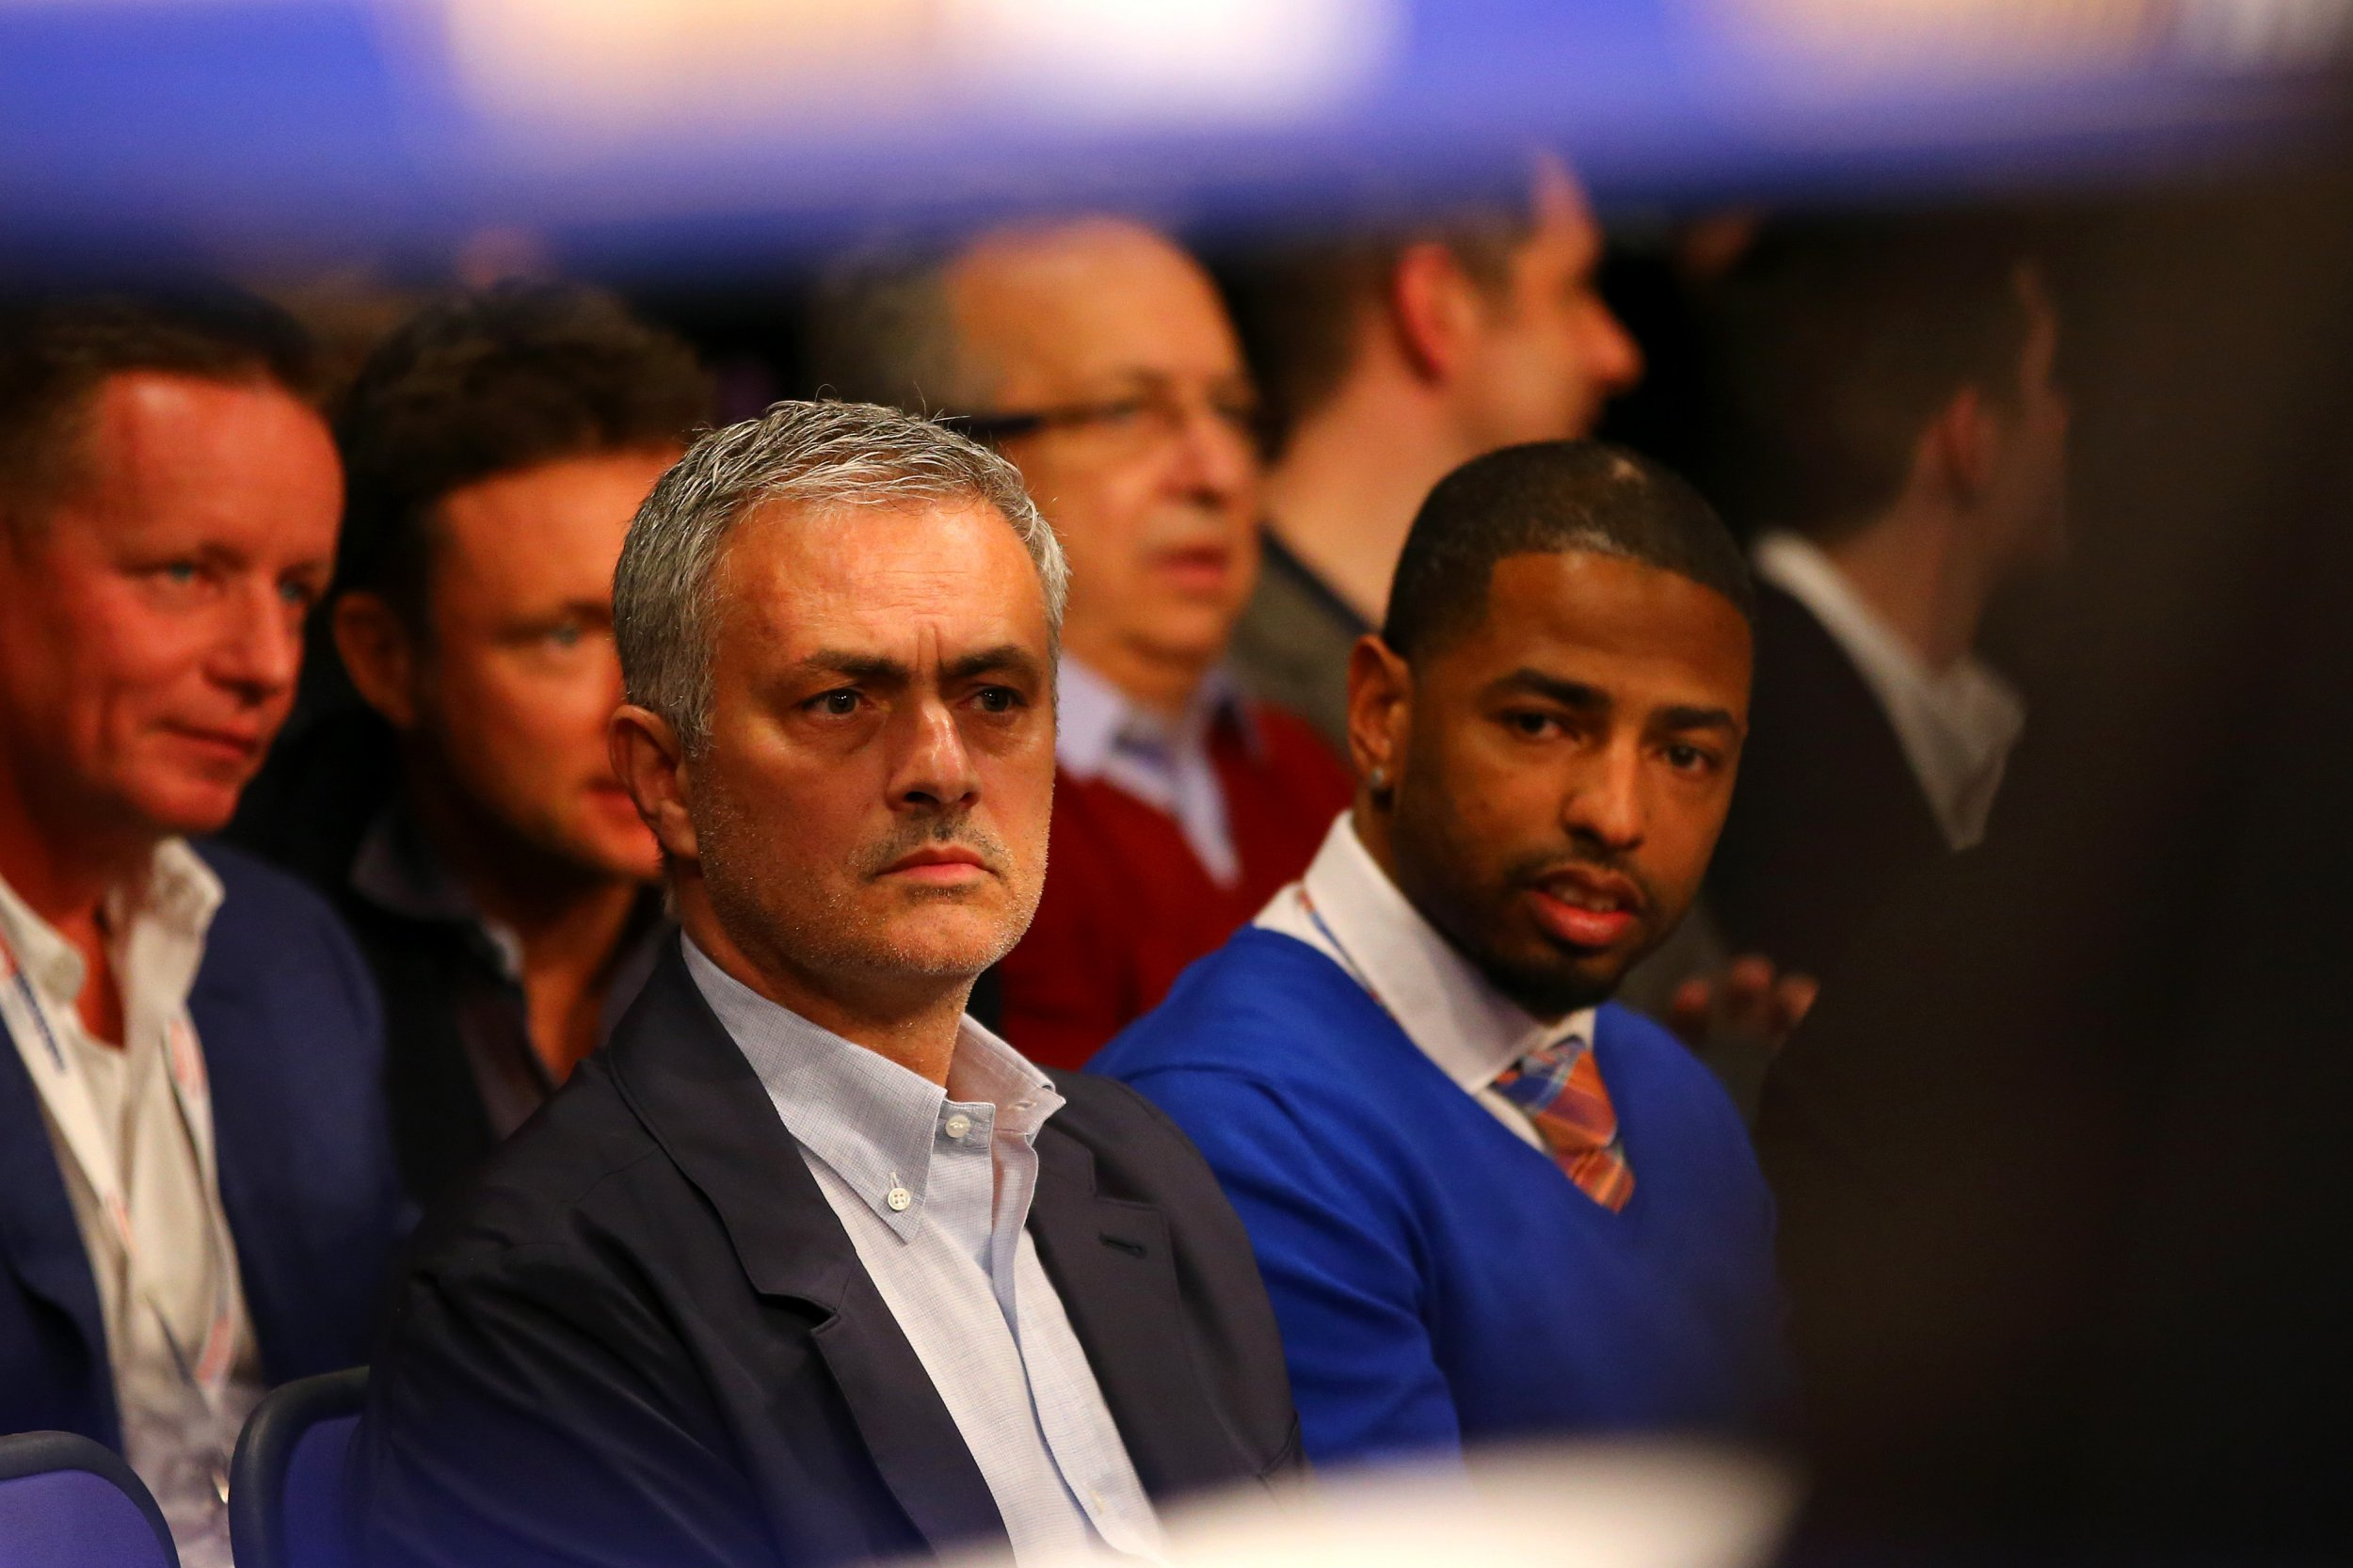 Jose Mourinho may miss out on becoming Manchester United manager.